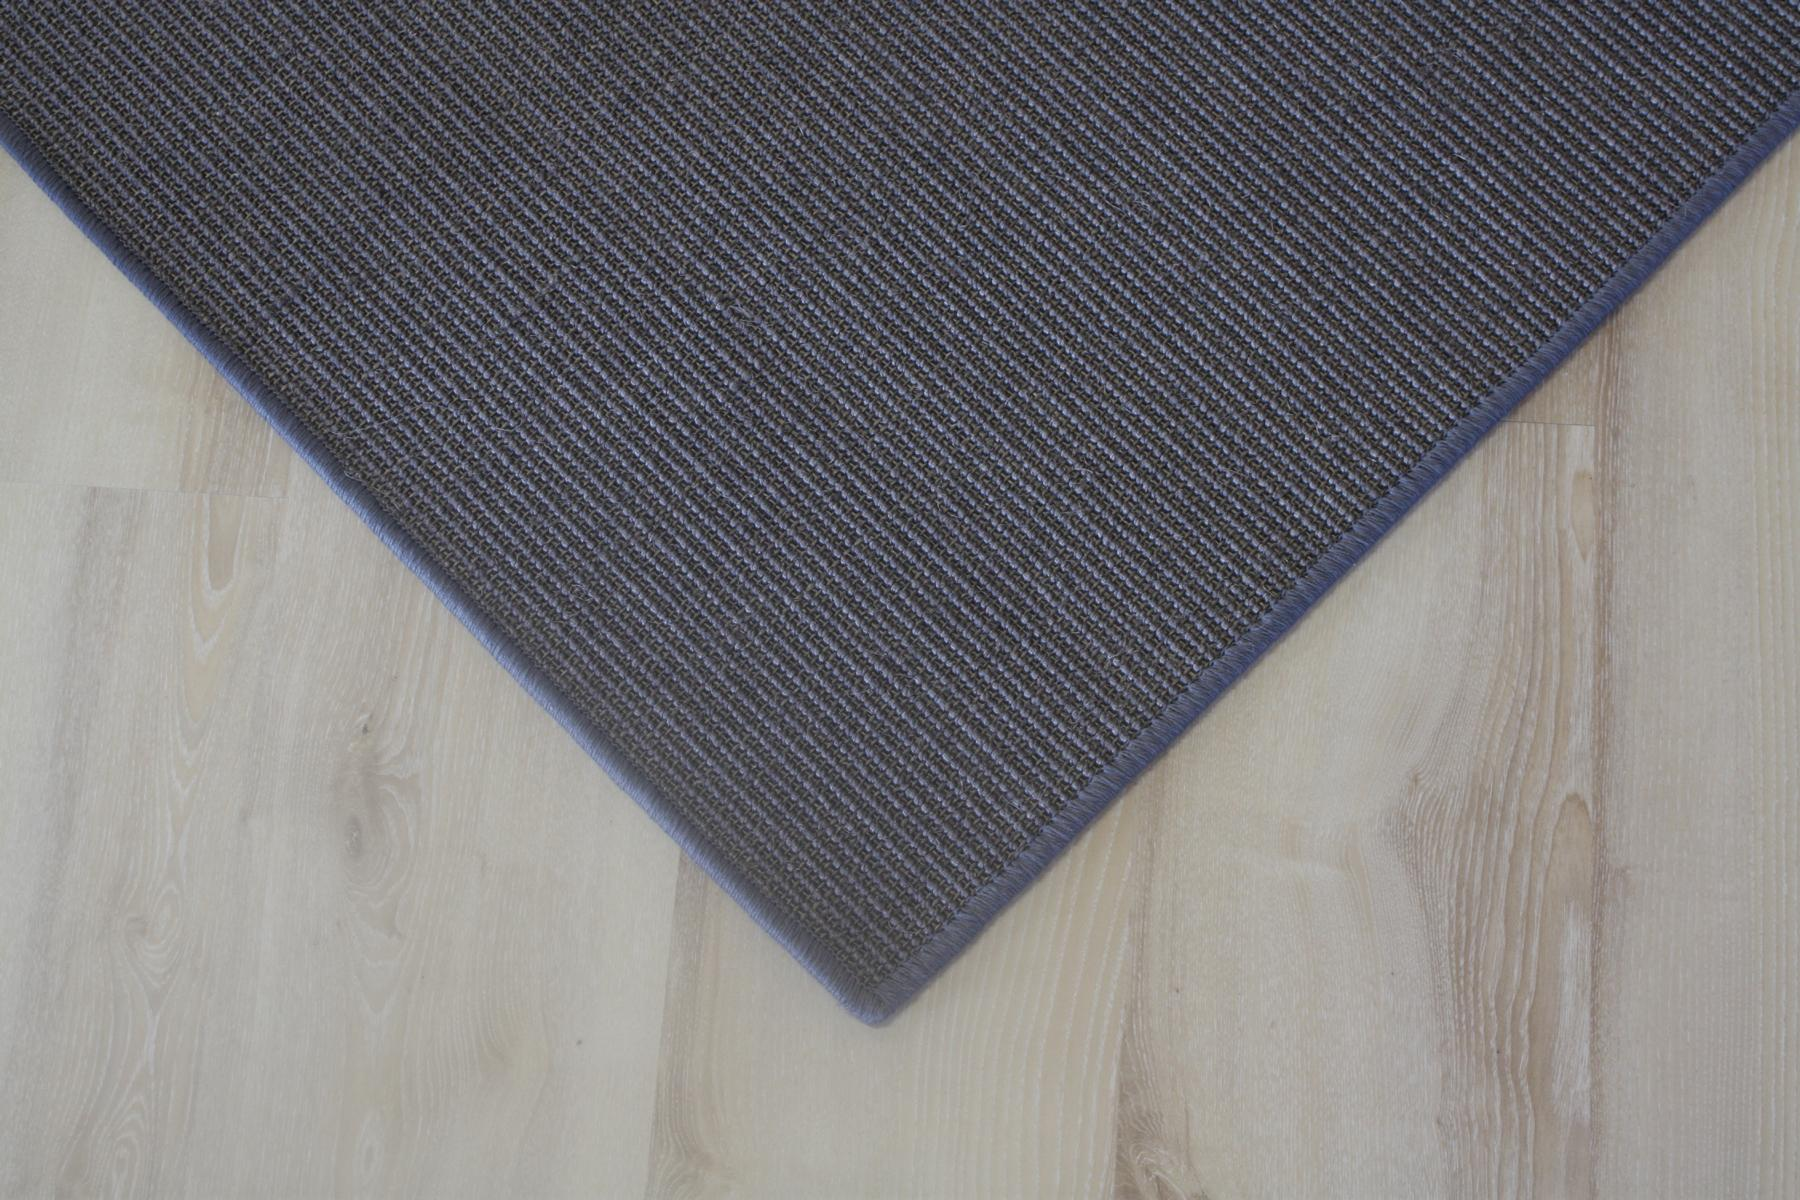 sisal tapis surfil gris 200x200cm 100 sisal graphite ebay. Black Bedroom Furniture Sets. Home Design Ideas